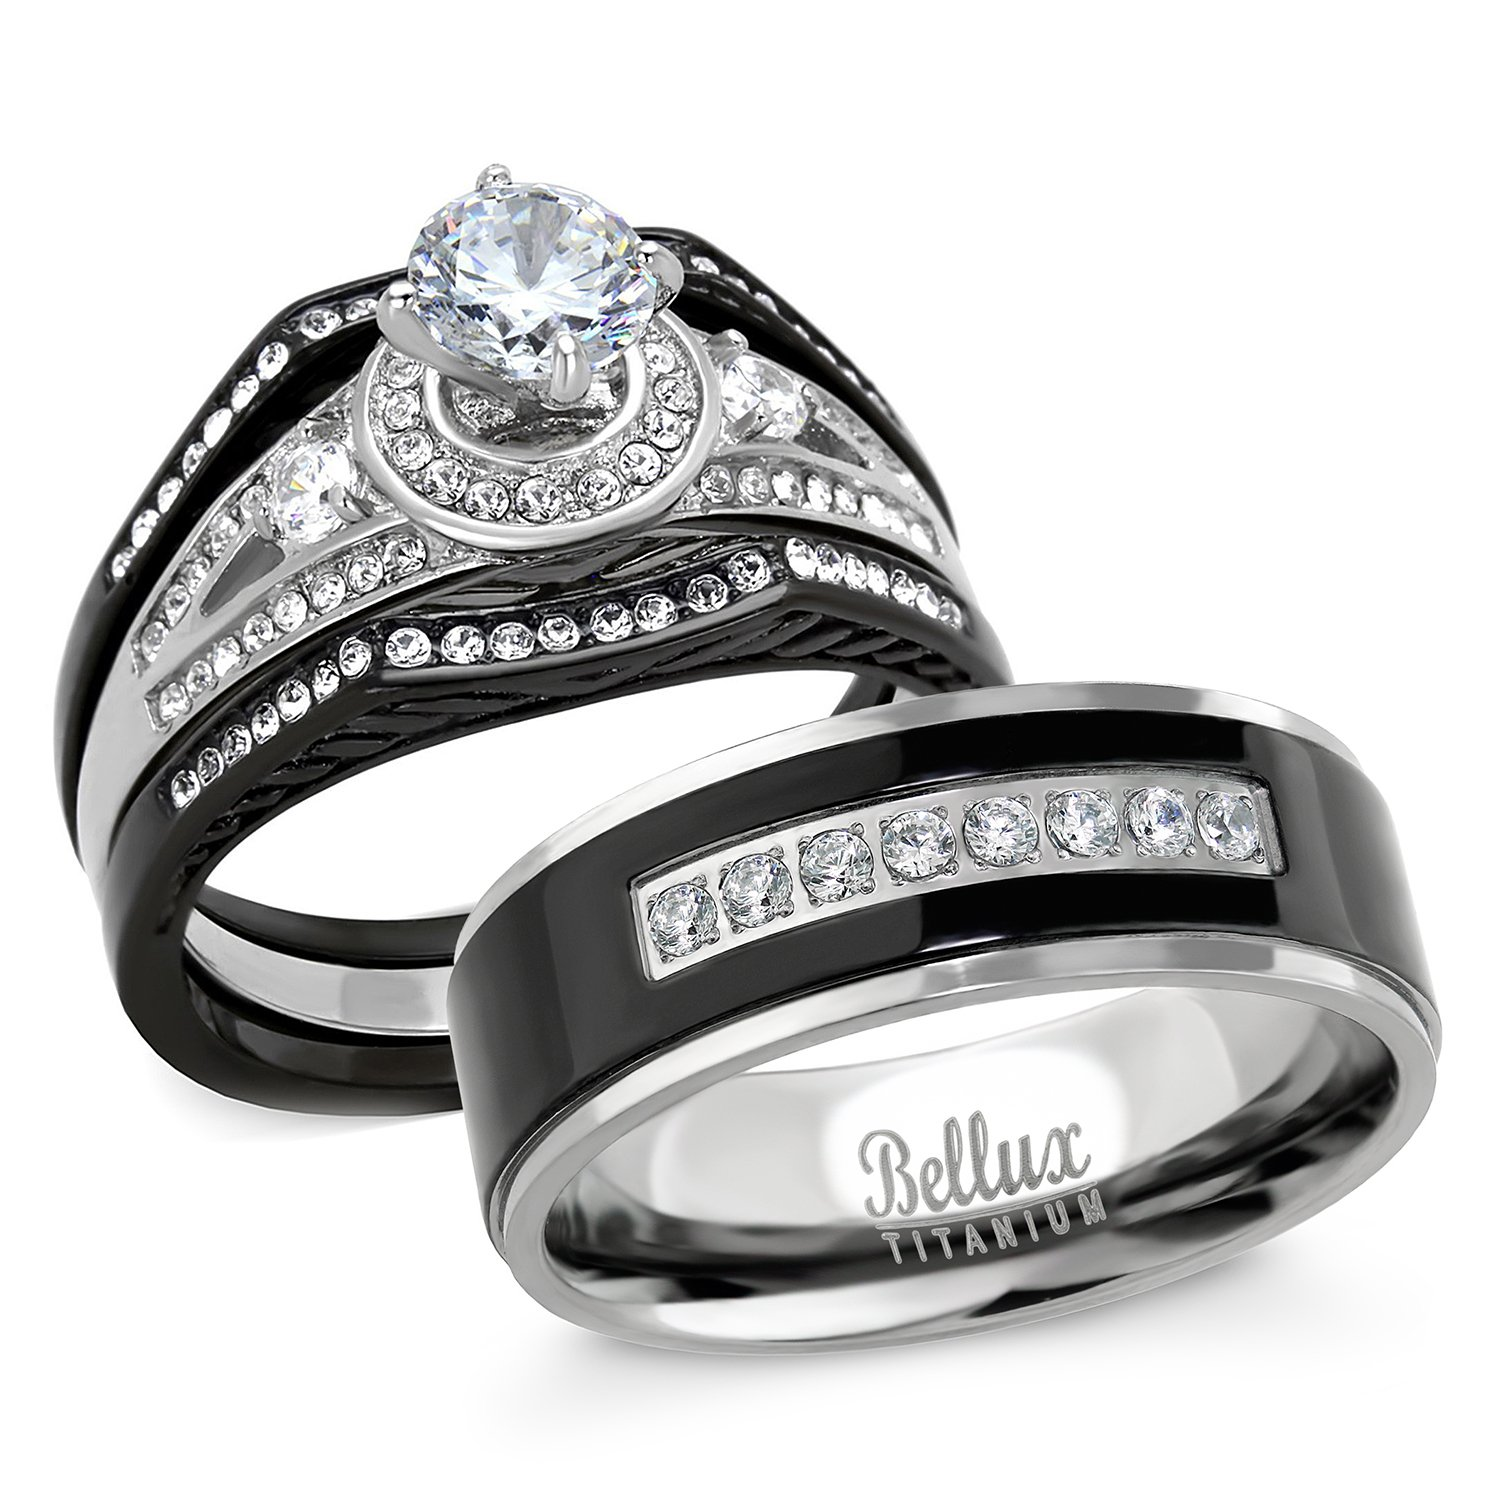 His and Hers Wedding Ring Sets Stainess Steel Vintage Style Halo Deisgn Bridal Sets Wedding Rings with Matching Wedding Band (Women's Size 07 & Men's Size 11)